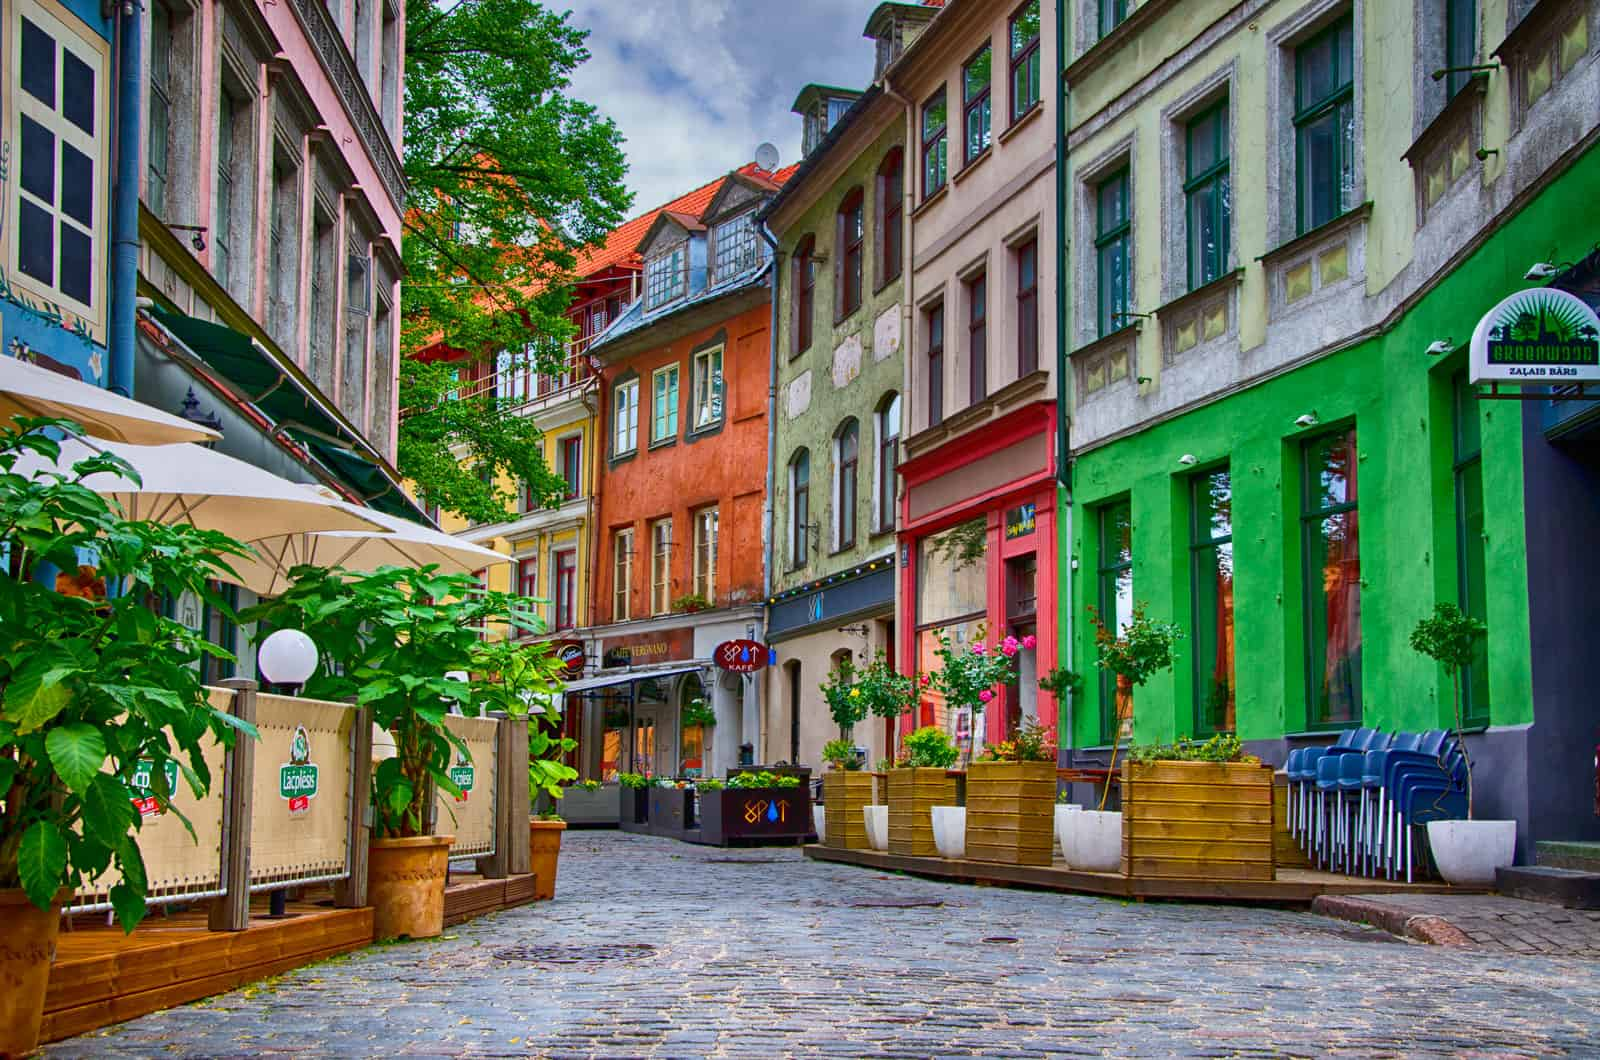 Colourful Street in Old Town, Riga, Latvia